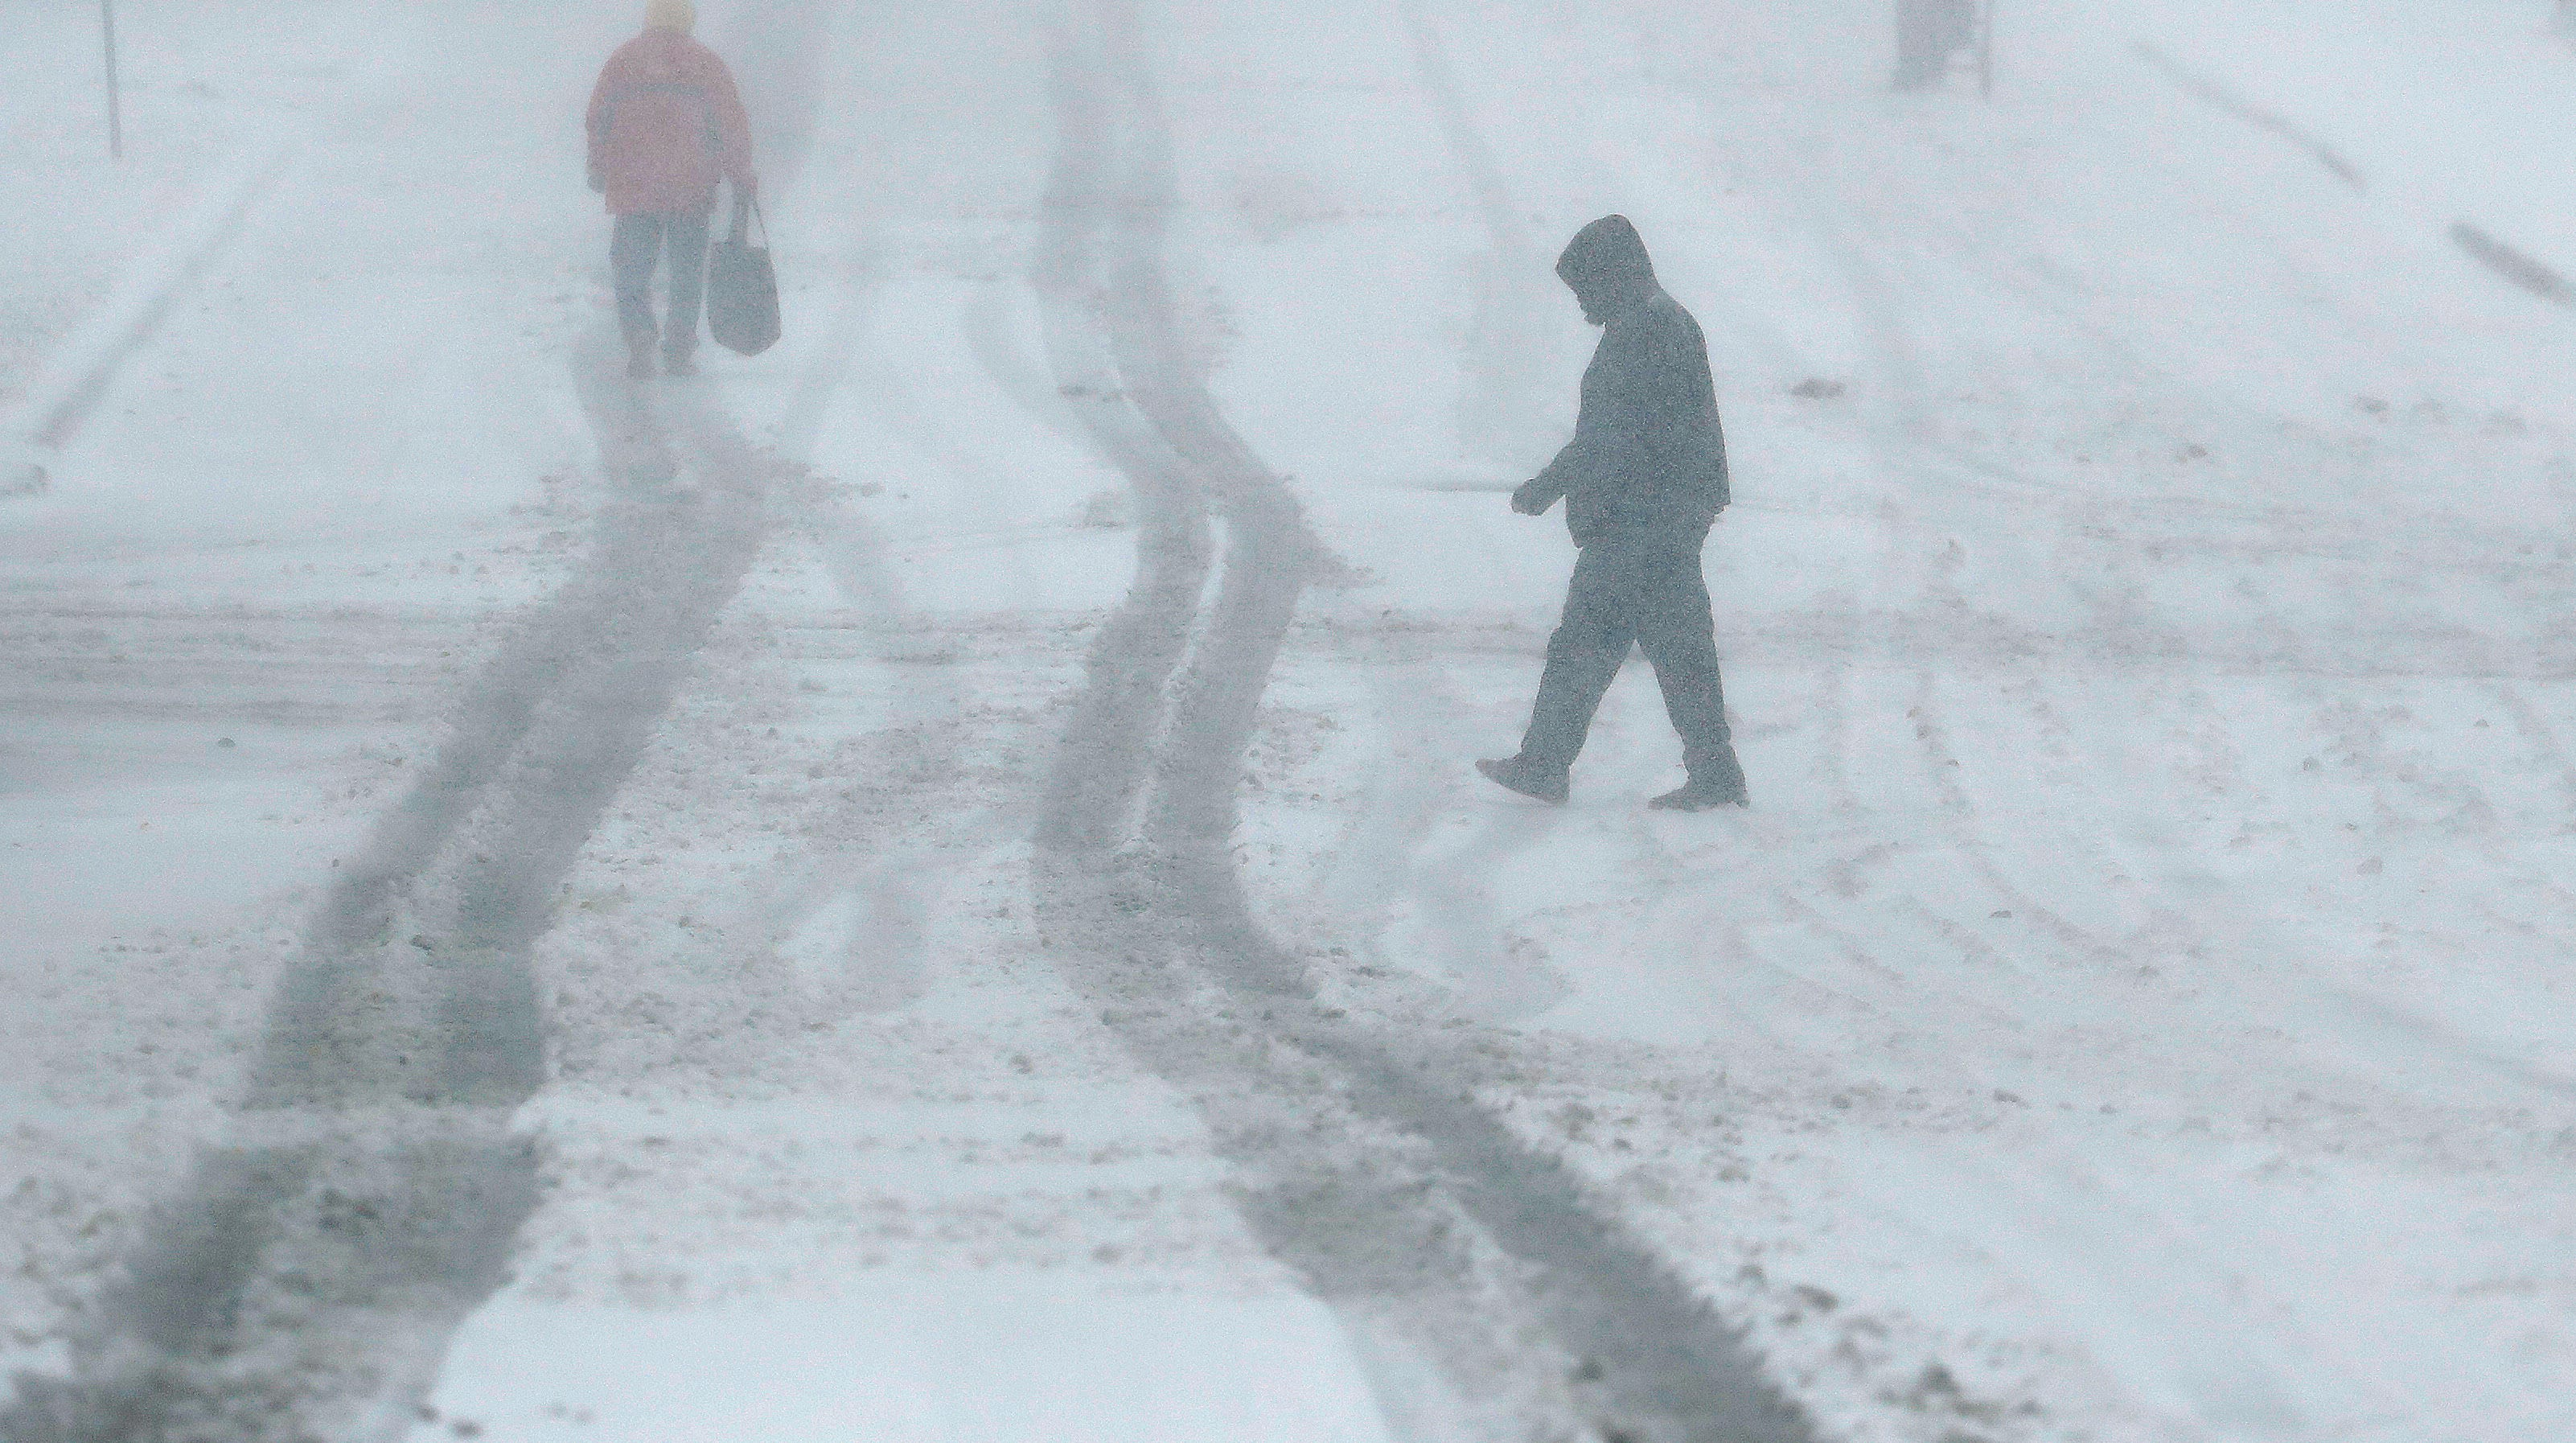 Heavy snow across Midwest, including Chicago, complicates post-Thanksgiving travel